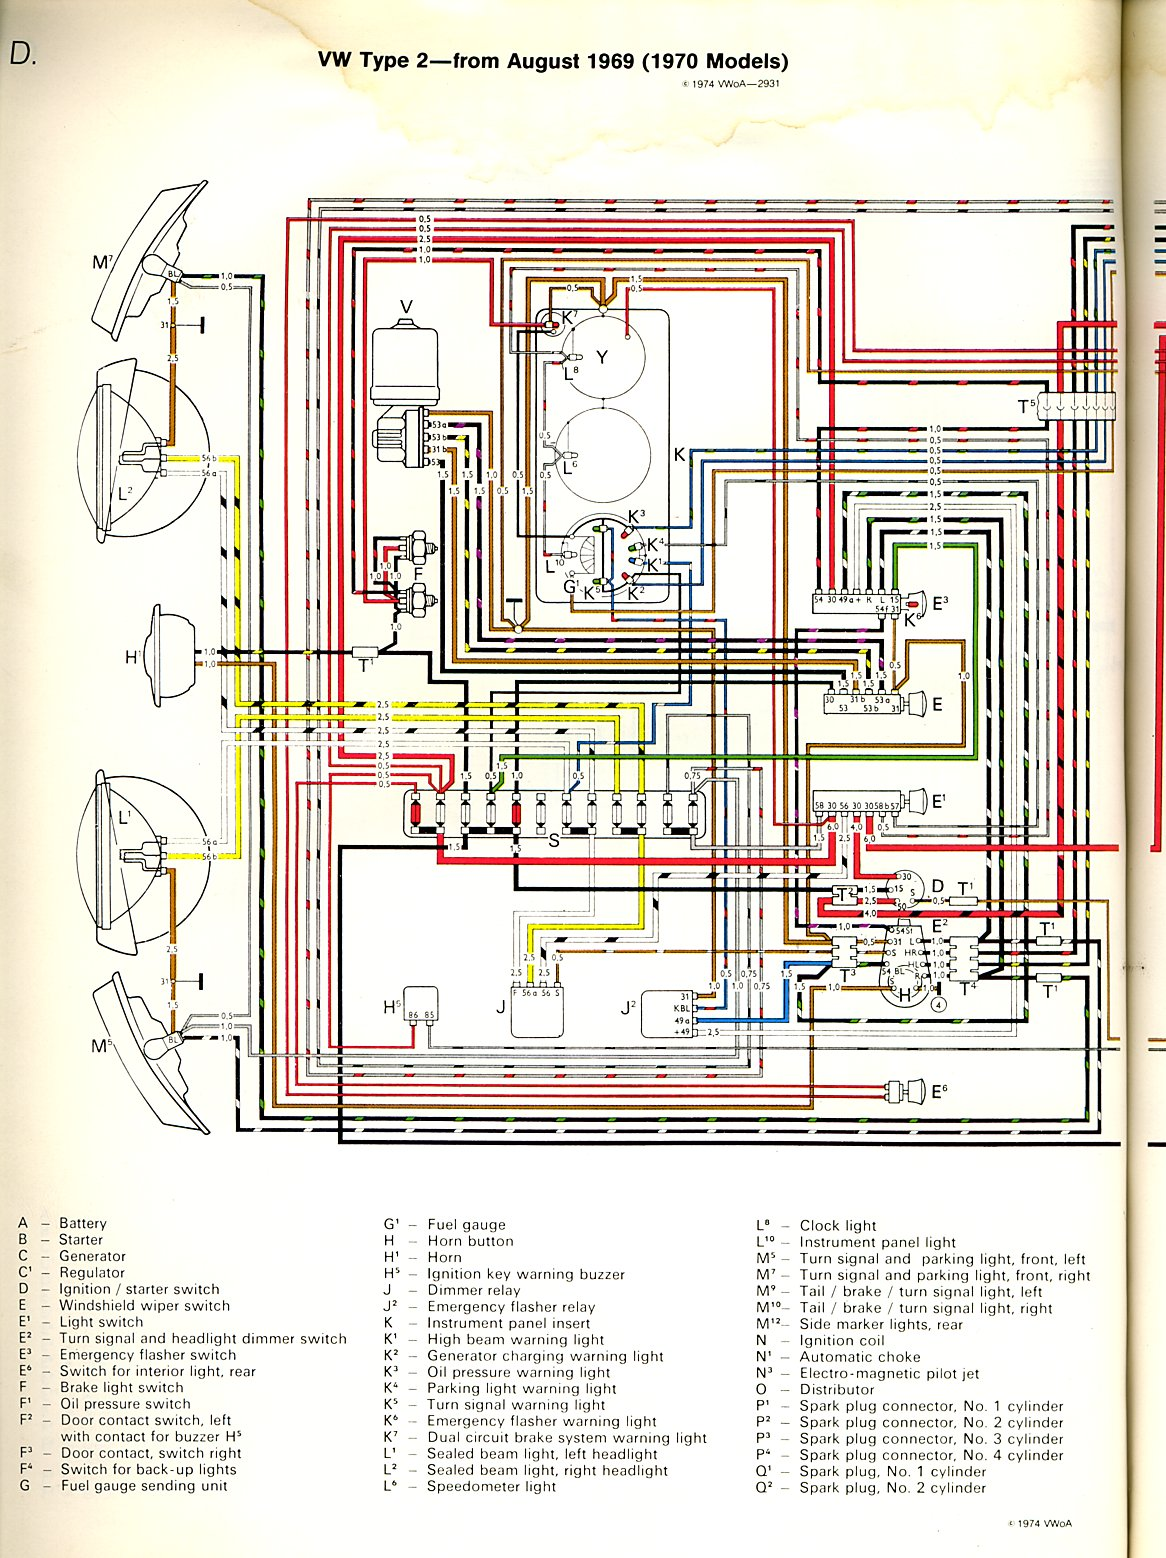 vw bus wiring diagrams vw wiring diagrams baybus 70a vw bus wiring diagrams baybus 70a